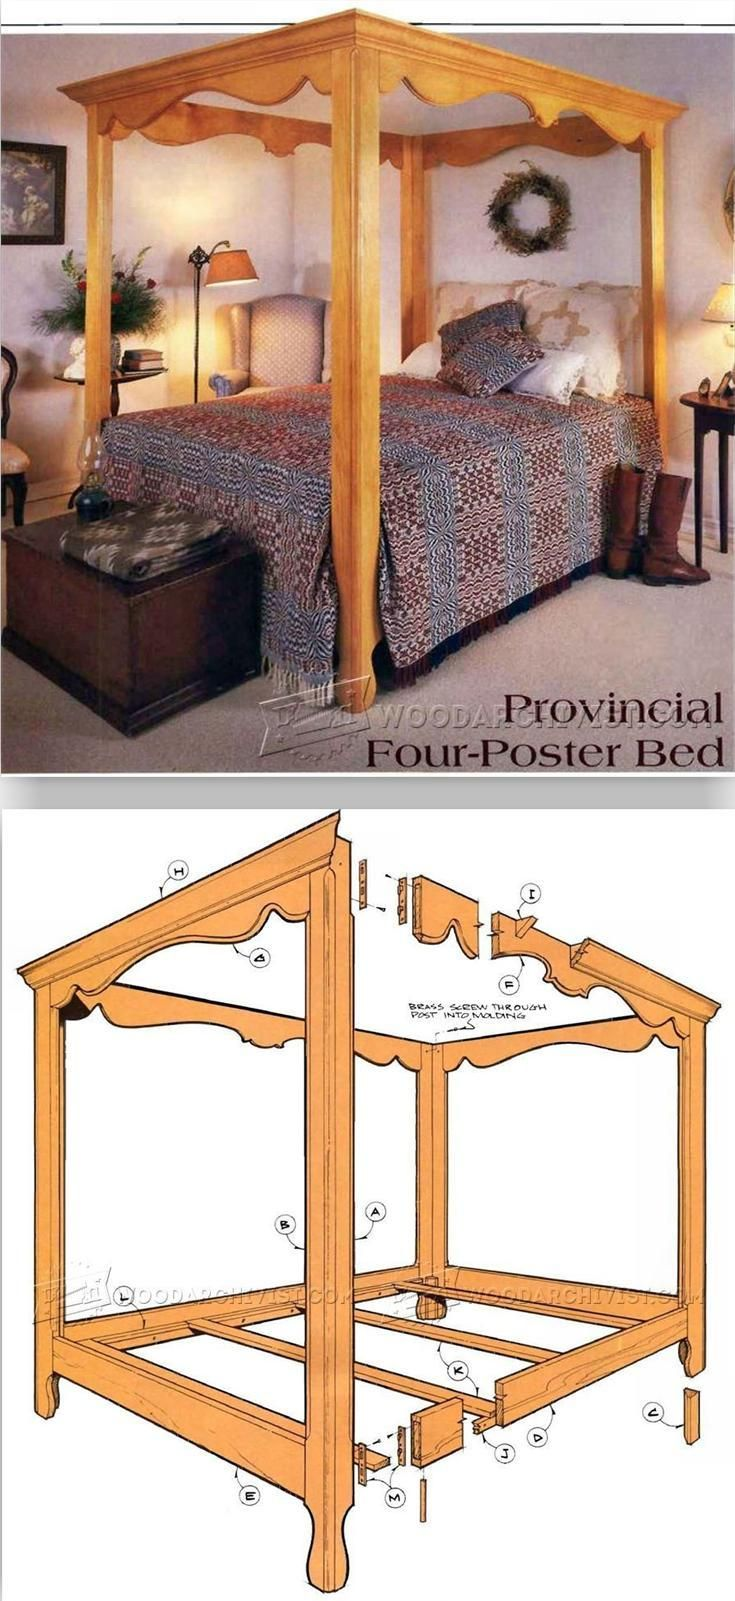 Four Poster Bed Plans - Furniture Plans and Projects | WoodArchivist ...